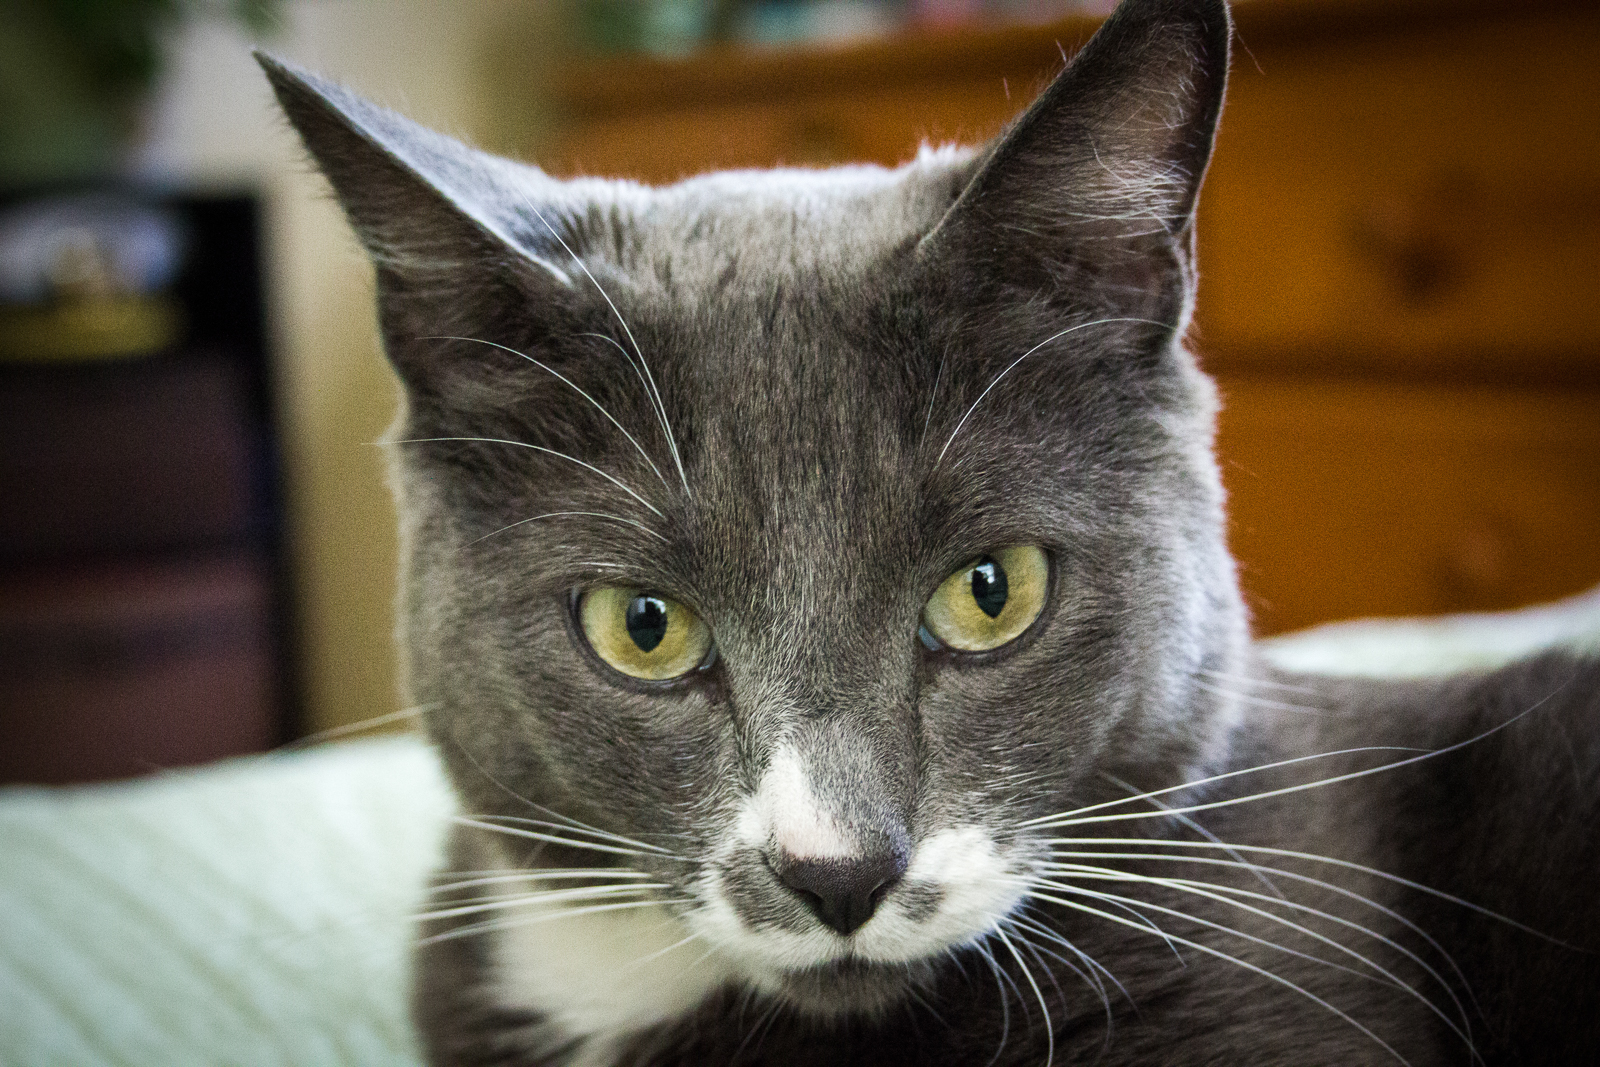 Sherman the Cat. Copyright 2013 Dave Bourgeau, All Rights Reserved